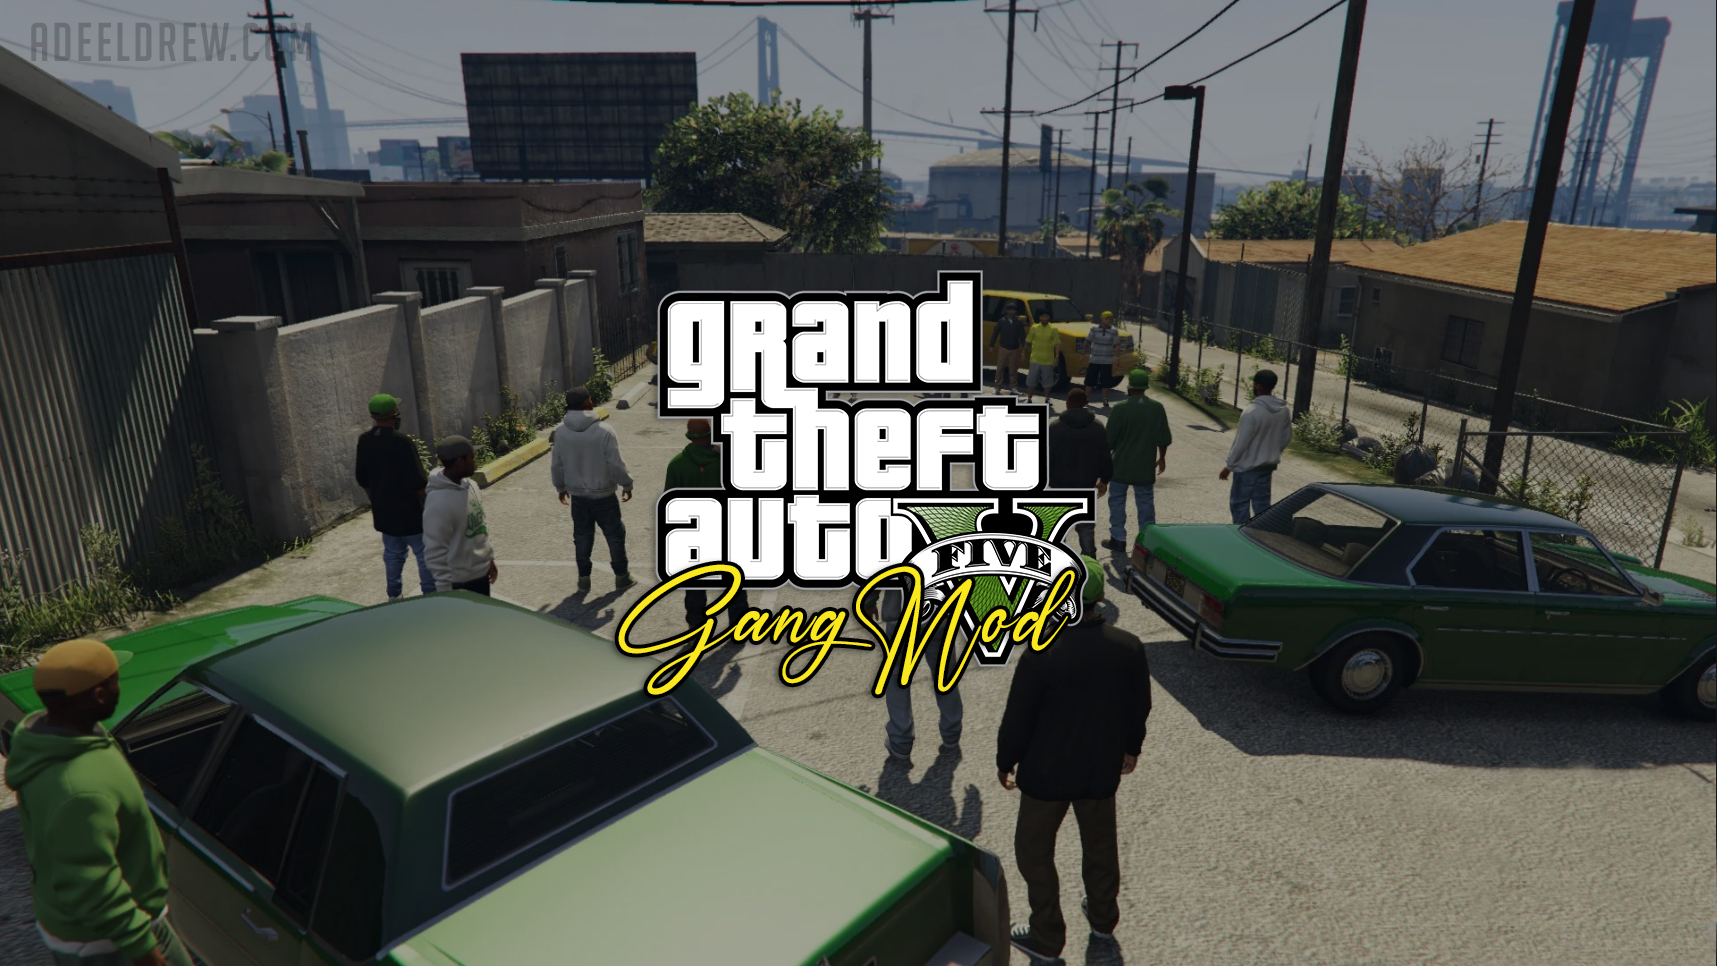 How to install Gang Mod (2021) GTA 5 MODS PC - Install The Gang Mode GTA 5 PC Real Life MODE | AdeelDrew how to install gang mod gta 5 xbox one how to install gang mod gta v how to install gang mod gta 5 ps4 can you install gta mods on ps4 can you install gta v mods on ps4 how to install mods on ps4 gta v how to install mods on ps4 gta 5 how to install gang mod gta 5 pc how to install gang mod in gta 5 how to install a gta 5 mod how to get gta 5 gang mod how to install mod for gta v how to install gta mods xbox one how to install mods xbox one gta 5 can you install gta 5 mods on xbox one how to install gta v mods xbox one how to install gta 5 gang mod gang mod gta 5 crash gang war mod gta 5 gang turf mod gta 5 gang life mod gta 5 biker gang mod gta 5 gang members mod gta 5 how to install gang mod gta 5 how to install gang mod gta 5 ps4 gang mod gta 5 mods gang and turf mod gta 5 joining a gang mod gta 5 how to activate gang mod gta 5 gta 5 gang attack mod gta 5 gang and turf mod not working gta 5 gang and turf mod tutorial gta sa gta 5 gang mod android can you join a gang in gta 5 can u join a gang in gta 5 how to get gta 5 gang mod how do you join a gang in gta 5 gang base gta 5 mod gta 5 best gang mod gta 5 ballas gang mod gta 5 blood gang mod gta 5 create a gang mod download gang mod gta 5 gta 5 gang mod deutsch gta 5 mod guerre de gang gang mod gta v gang mod gta gang mod for gta 5 gta 5 franklin gang mod gta 5 gang fight mod gta 5 gang mod typical gamer how to get gang mod on gta 5 ps4 how to get gang mod on gta 5 xbox one how to install gang mod gta 5 xbox one how to download gang mod gta 5 how to install gang mod gta 5 pc gta 5 gang house mod gta 5 gang hideouts mod gang mod in gta 5 gta 5 gang and turf mod install gta 5 gang mod installieren gta 5 gang mod kurulum gta 5 gang war mod kurulumu gta 5 gang and turf mod kurulumu gta 5 lspdfr gang mod gta 5 gang leader mod gang mod gta v mods gta 5 gang missions mod gta 5 gang map mod gta 5 gang mod not working ho